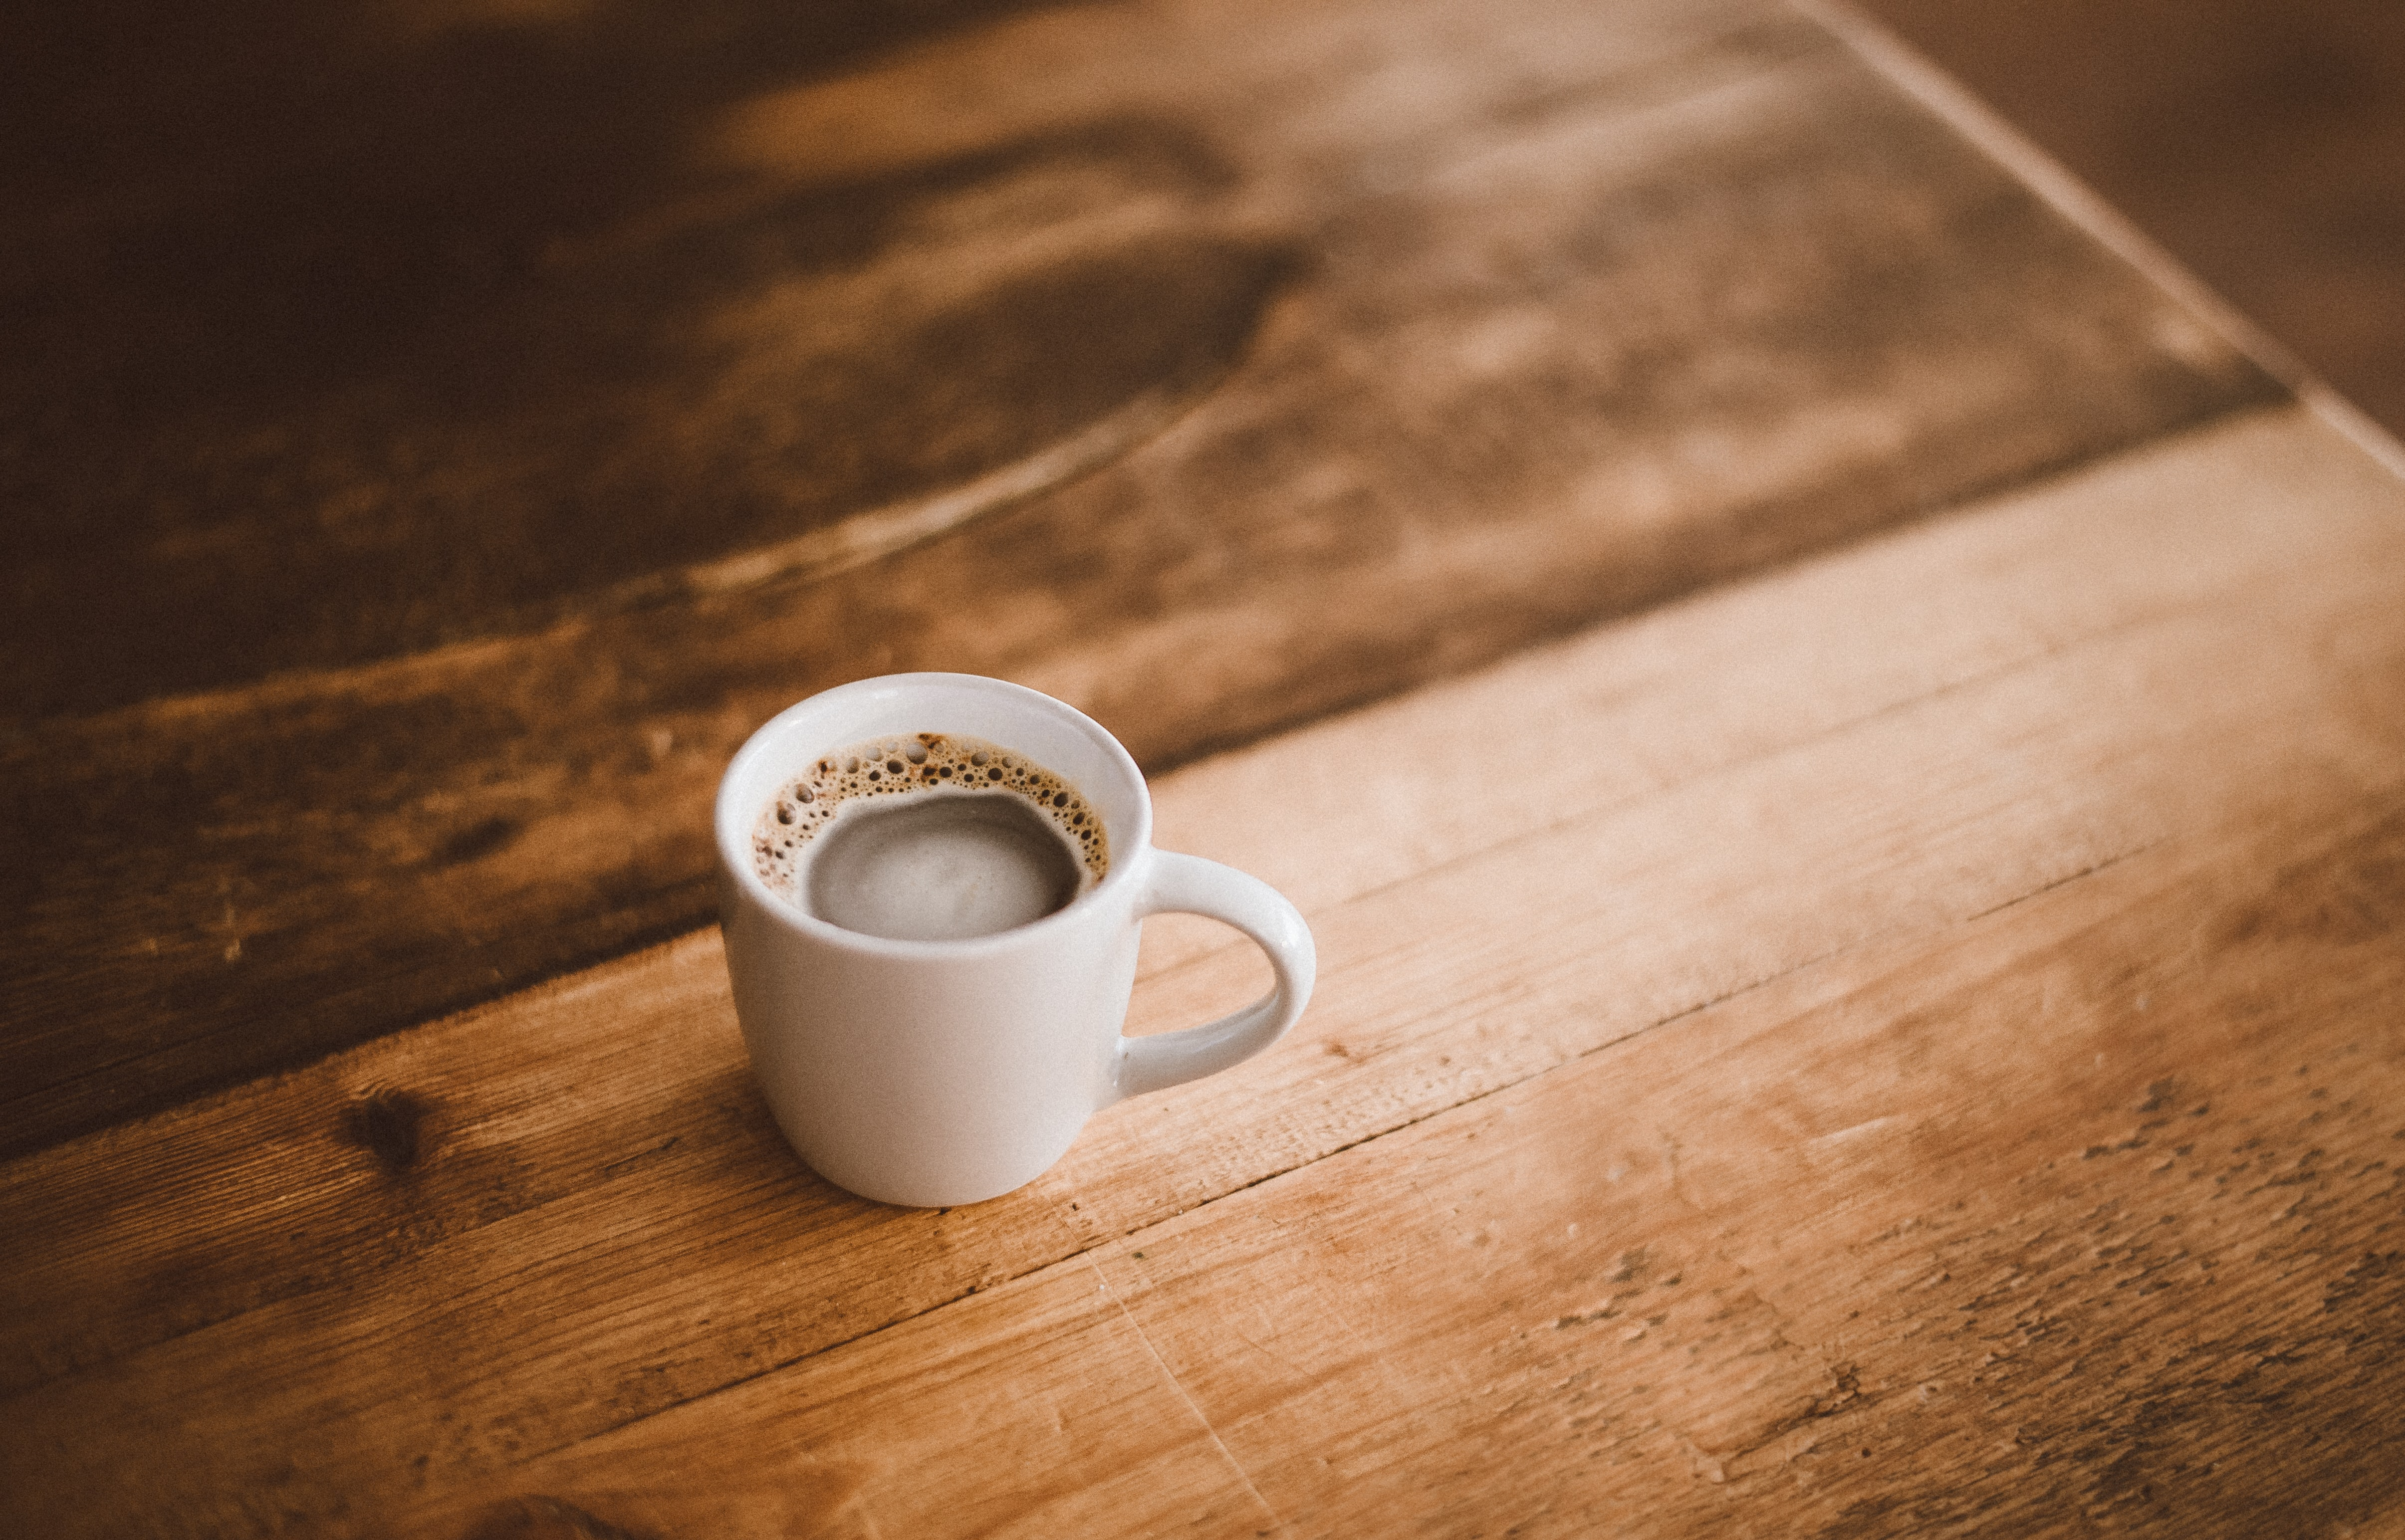 A little white mug of espresso on a wood table